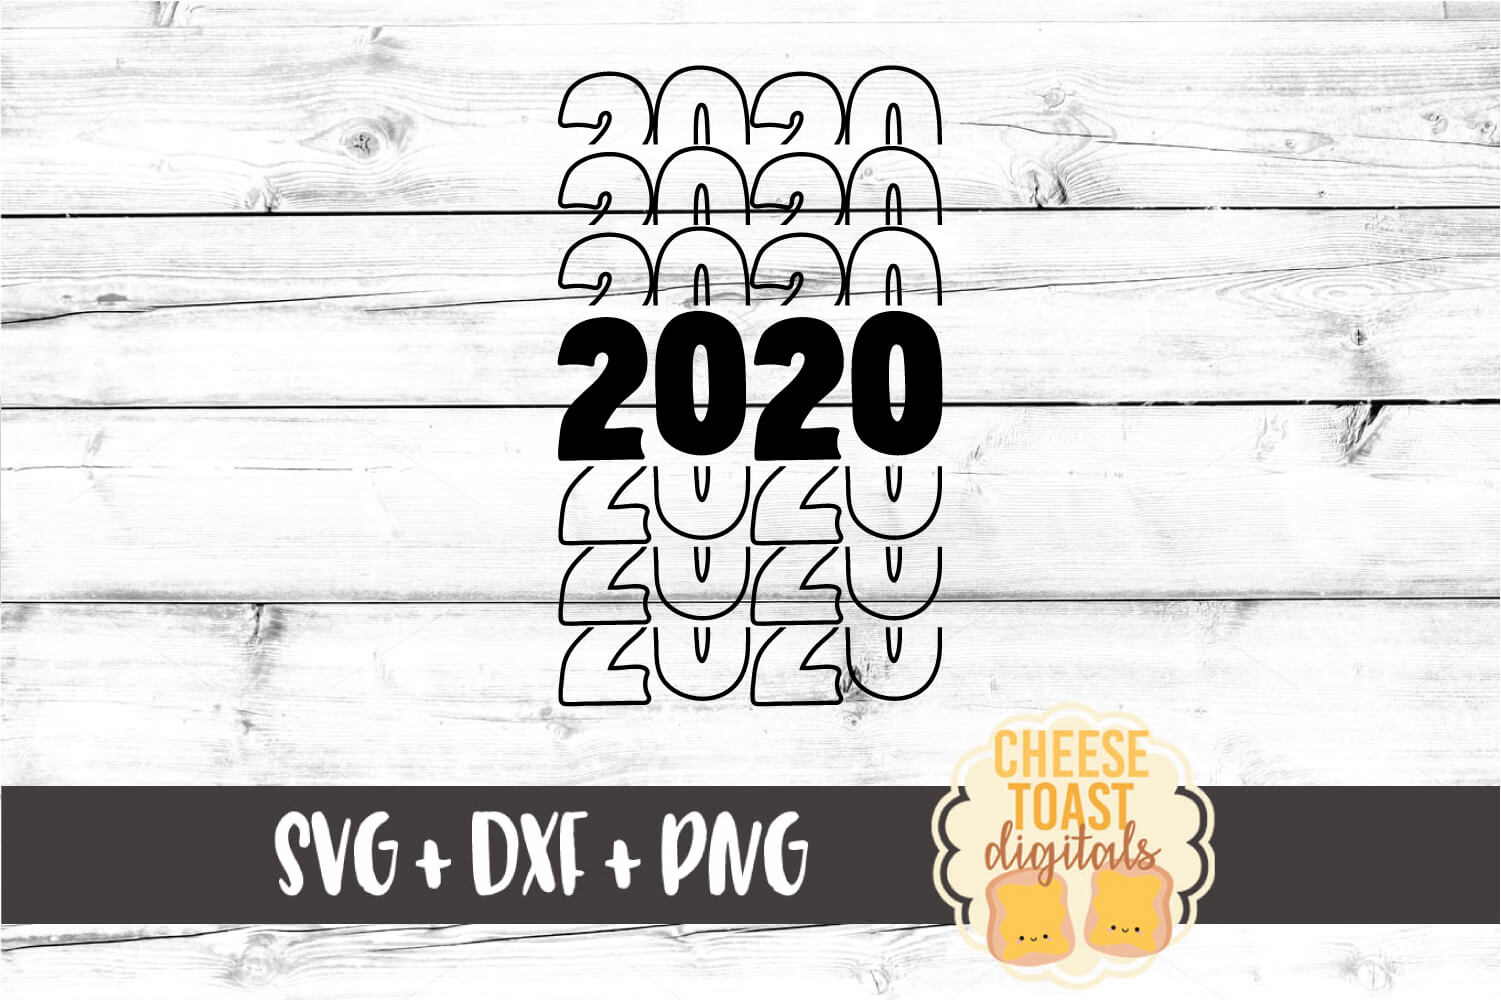 2020 Mirror Letter Design - New Year SVG PNG DXF Cut Files example image 2